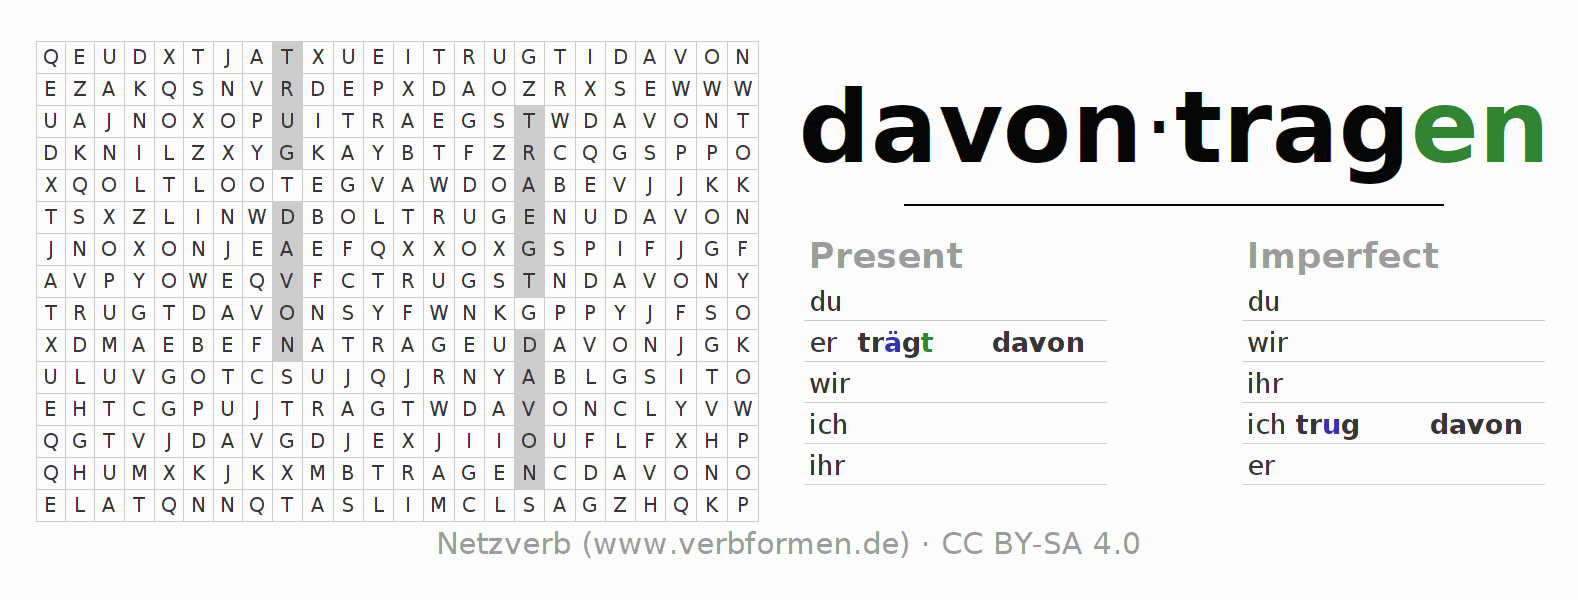 Word search puzzle for the conjugation of the verb davontragen